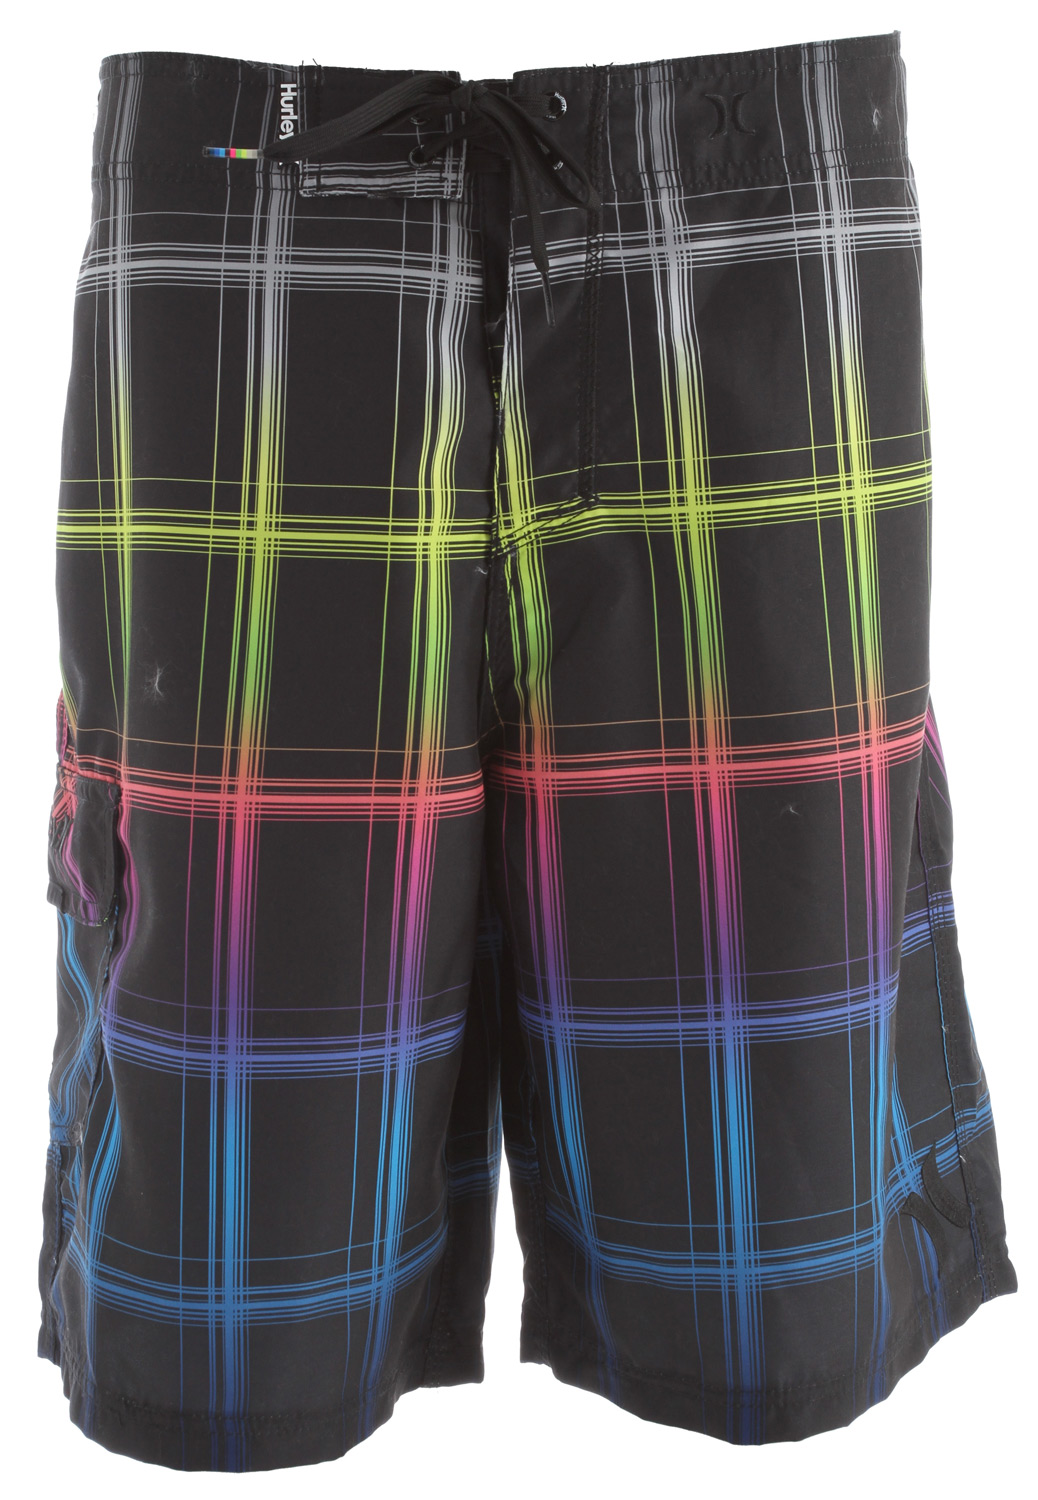 Surf Key Features of the Hurley Puerto Rico Blend Boardshorts: 22 Outseam Recycled Supersuede Patented EZ fly closure, embroidered logos, patch pocket with Velcro flap - $26.95